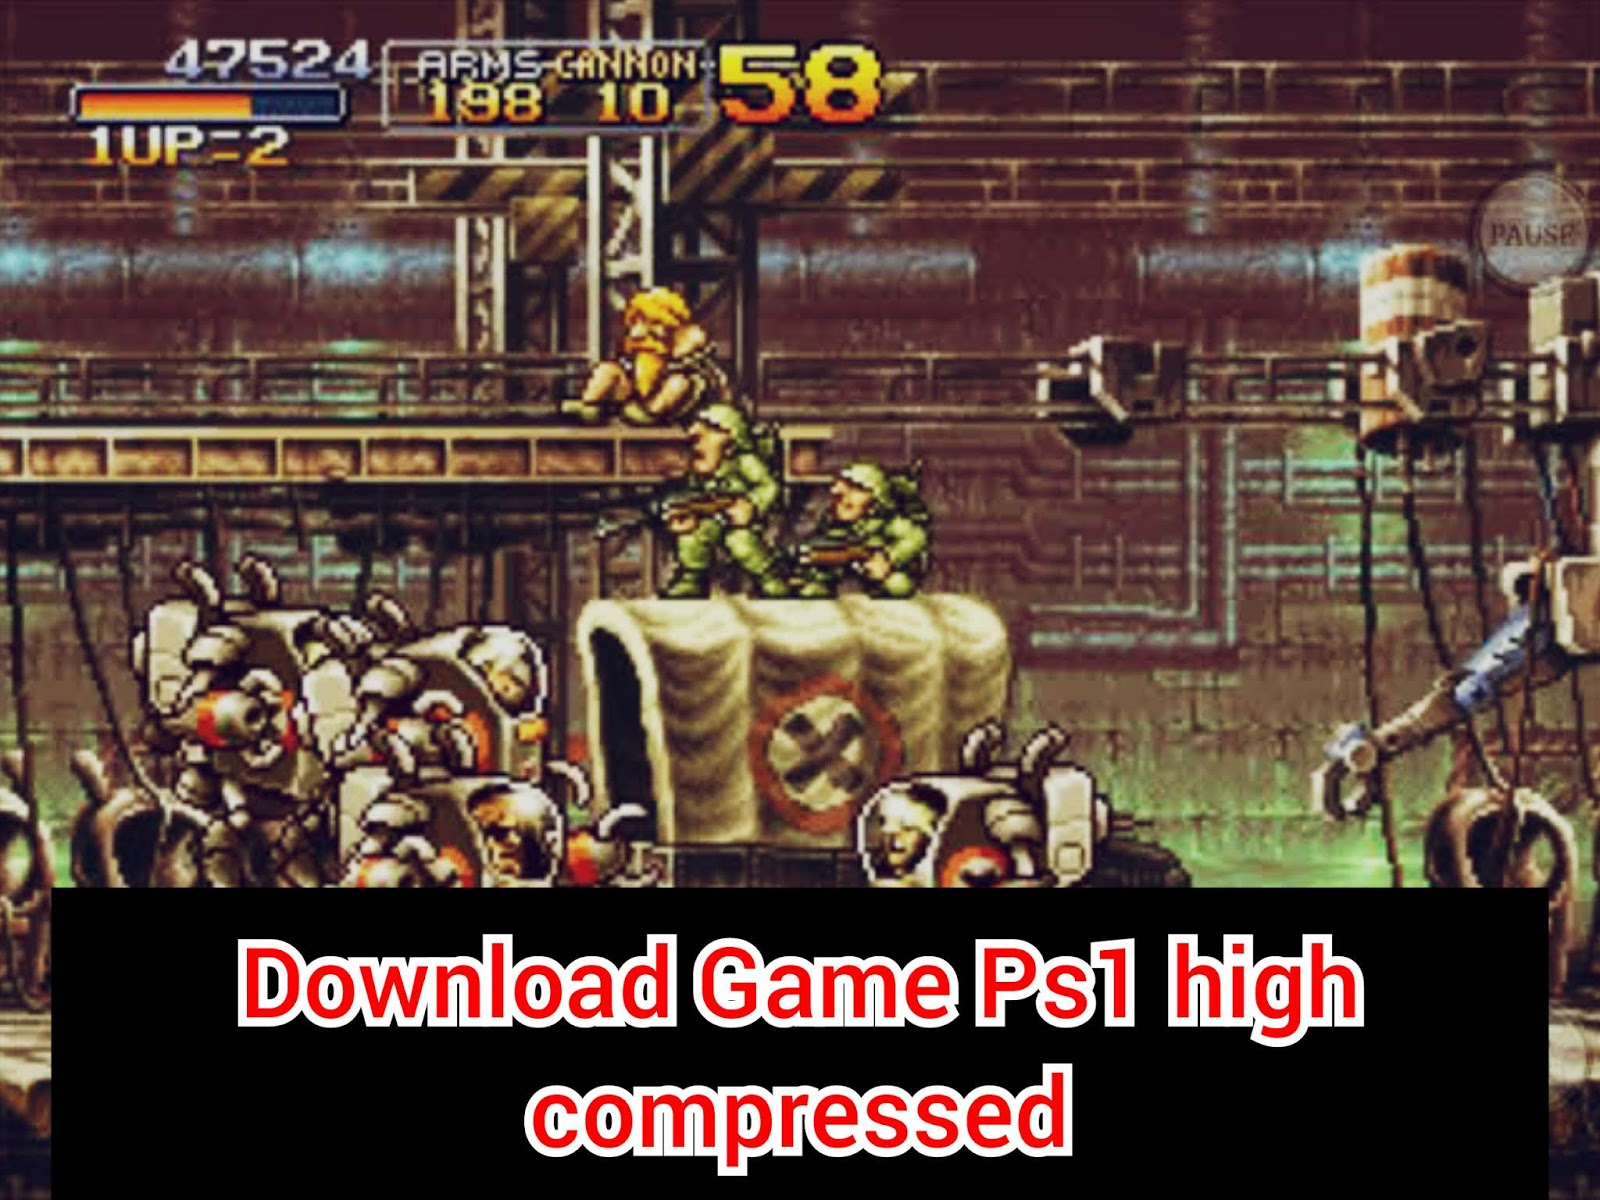 Download game ps1 high compress